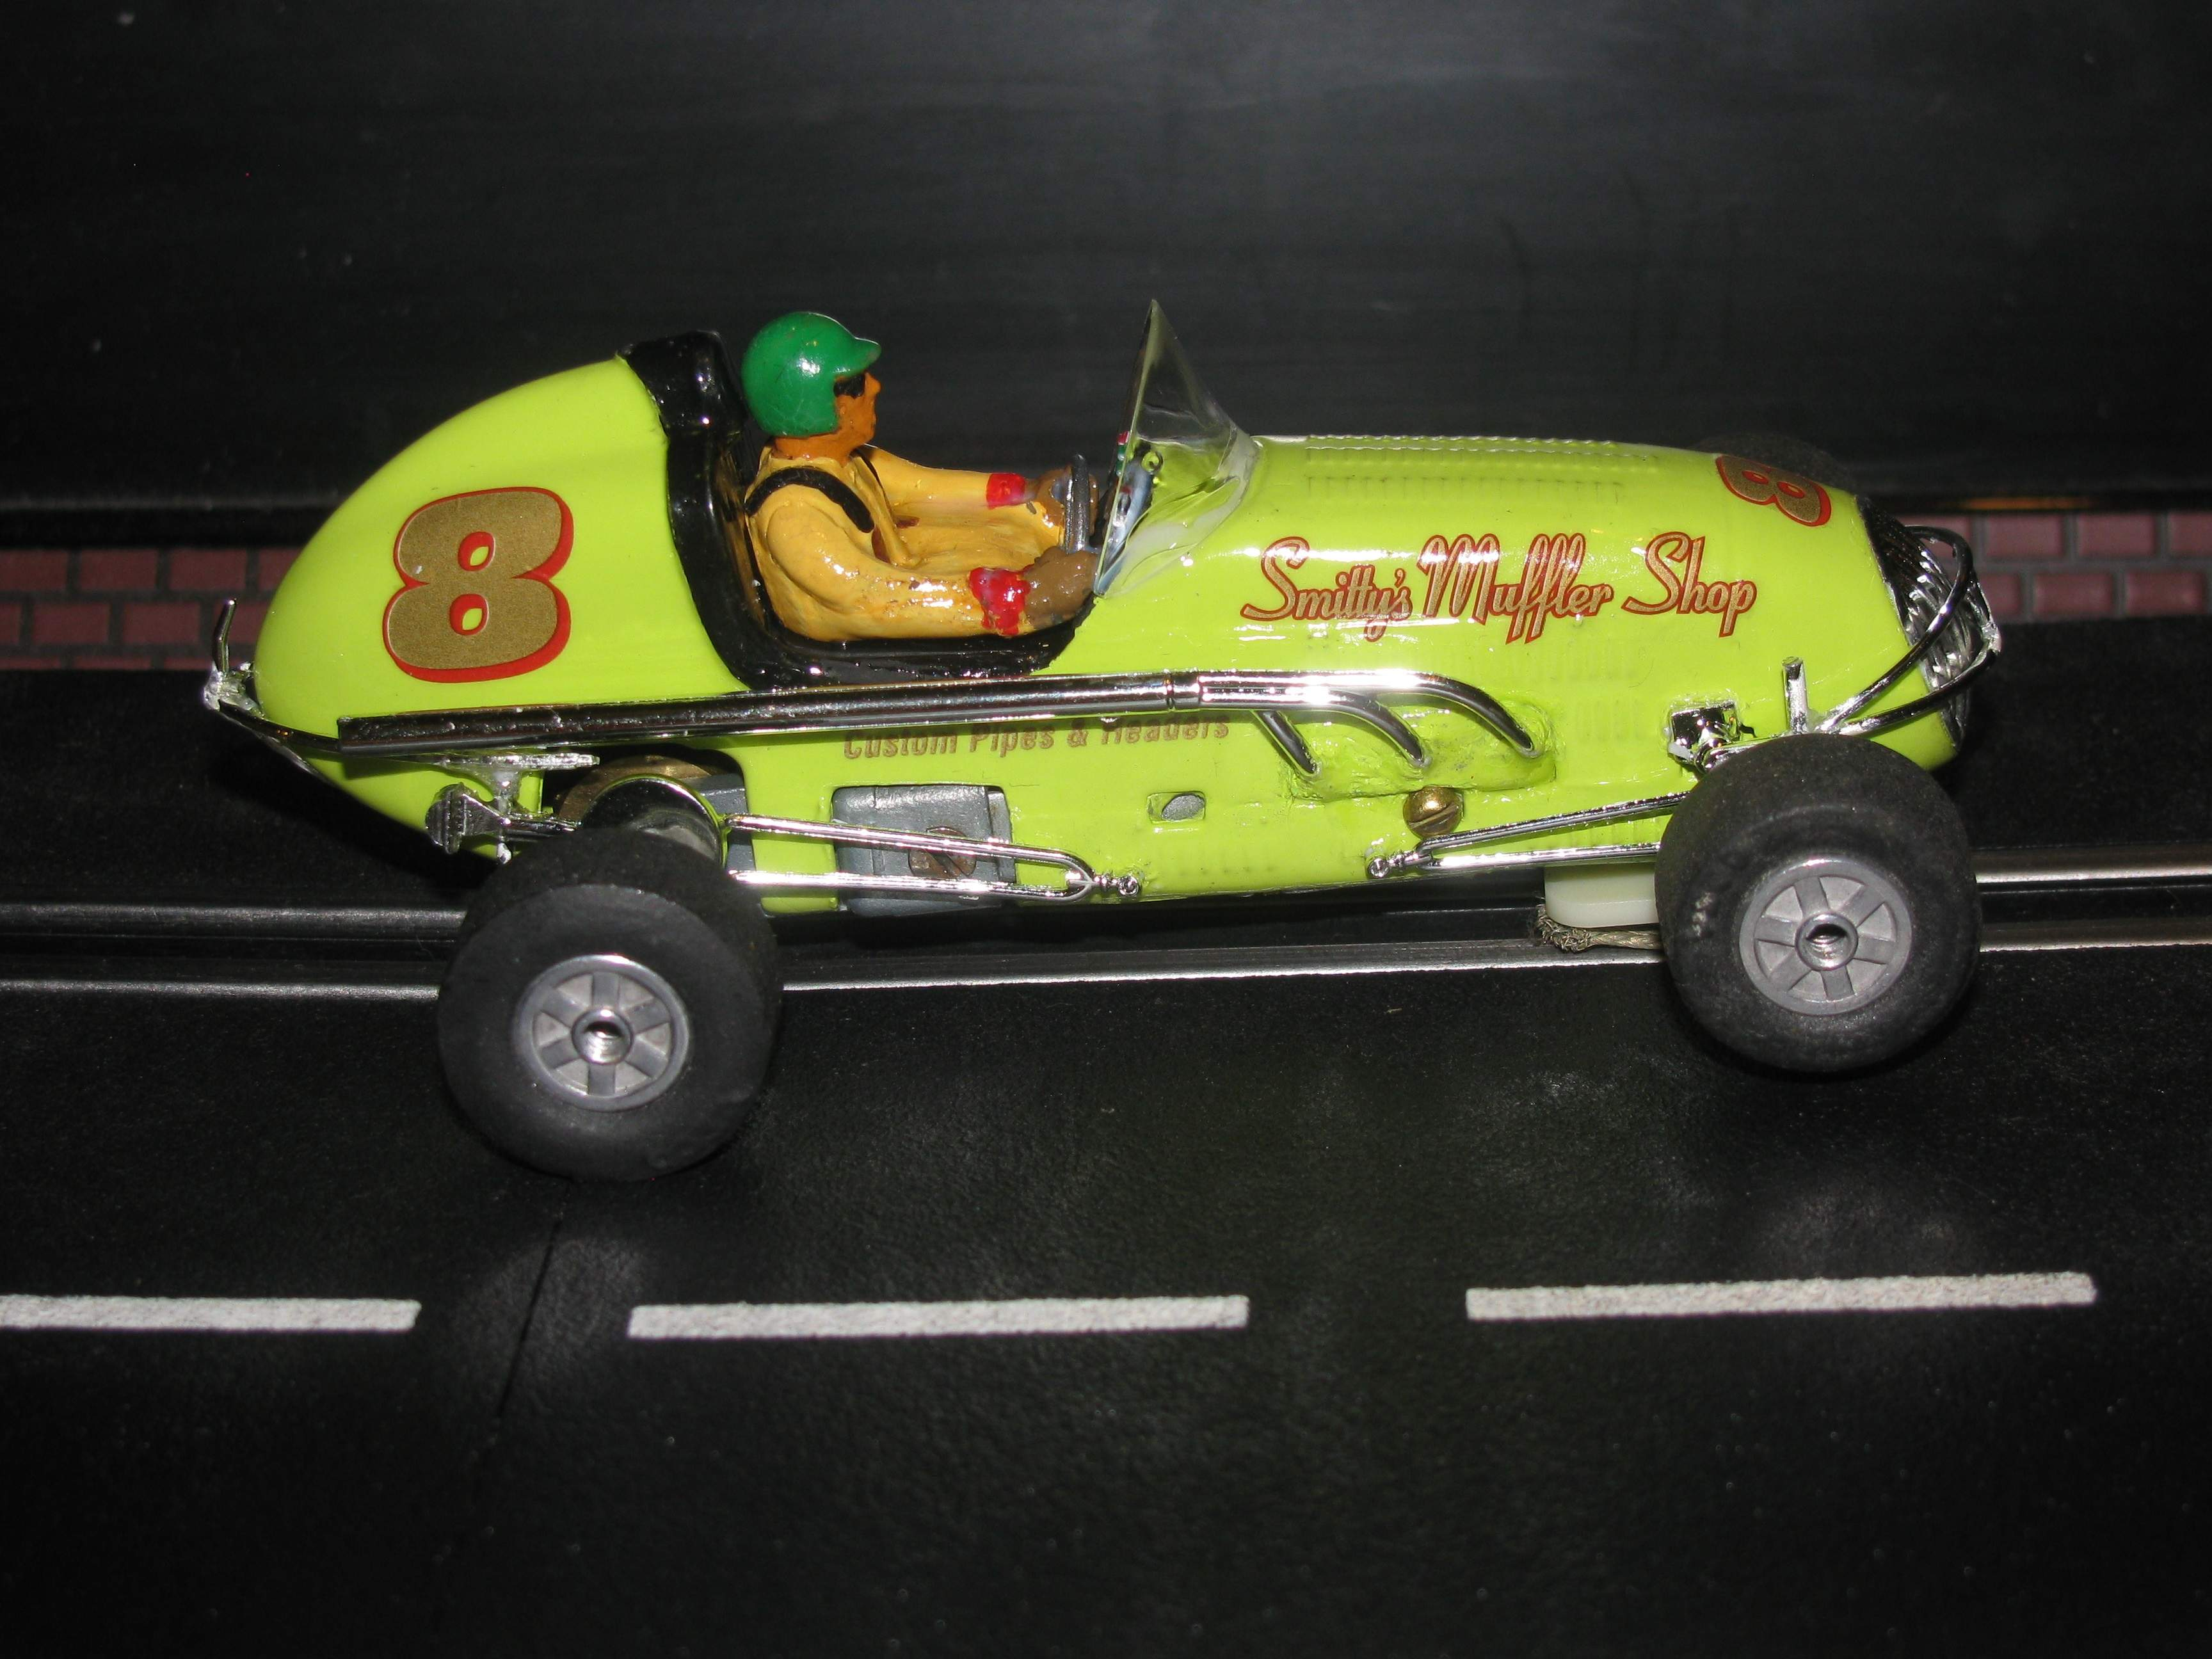 * SOLD * * Special Price for Charles E.* Revell Midget Racer Smittys Keylime Muffler Shop Racing Special 1:32 Scale